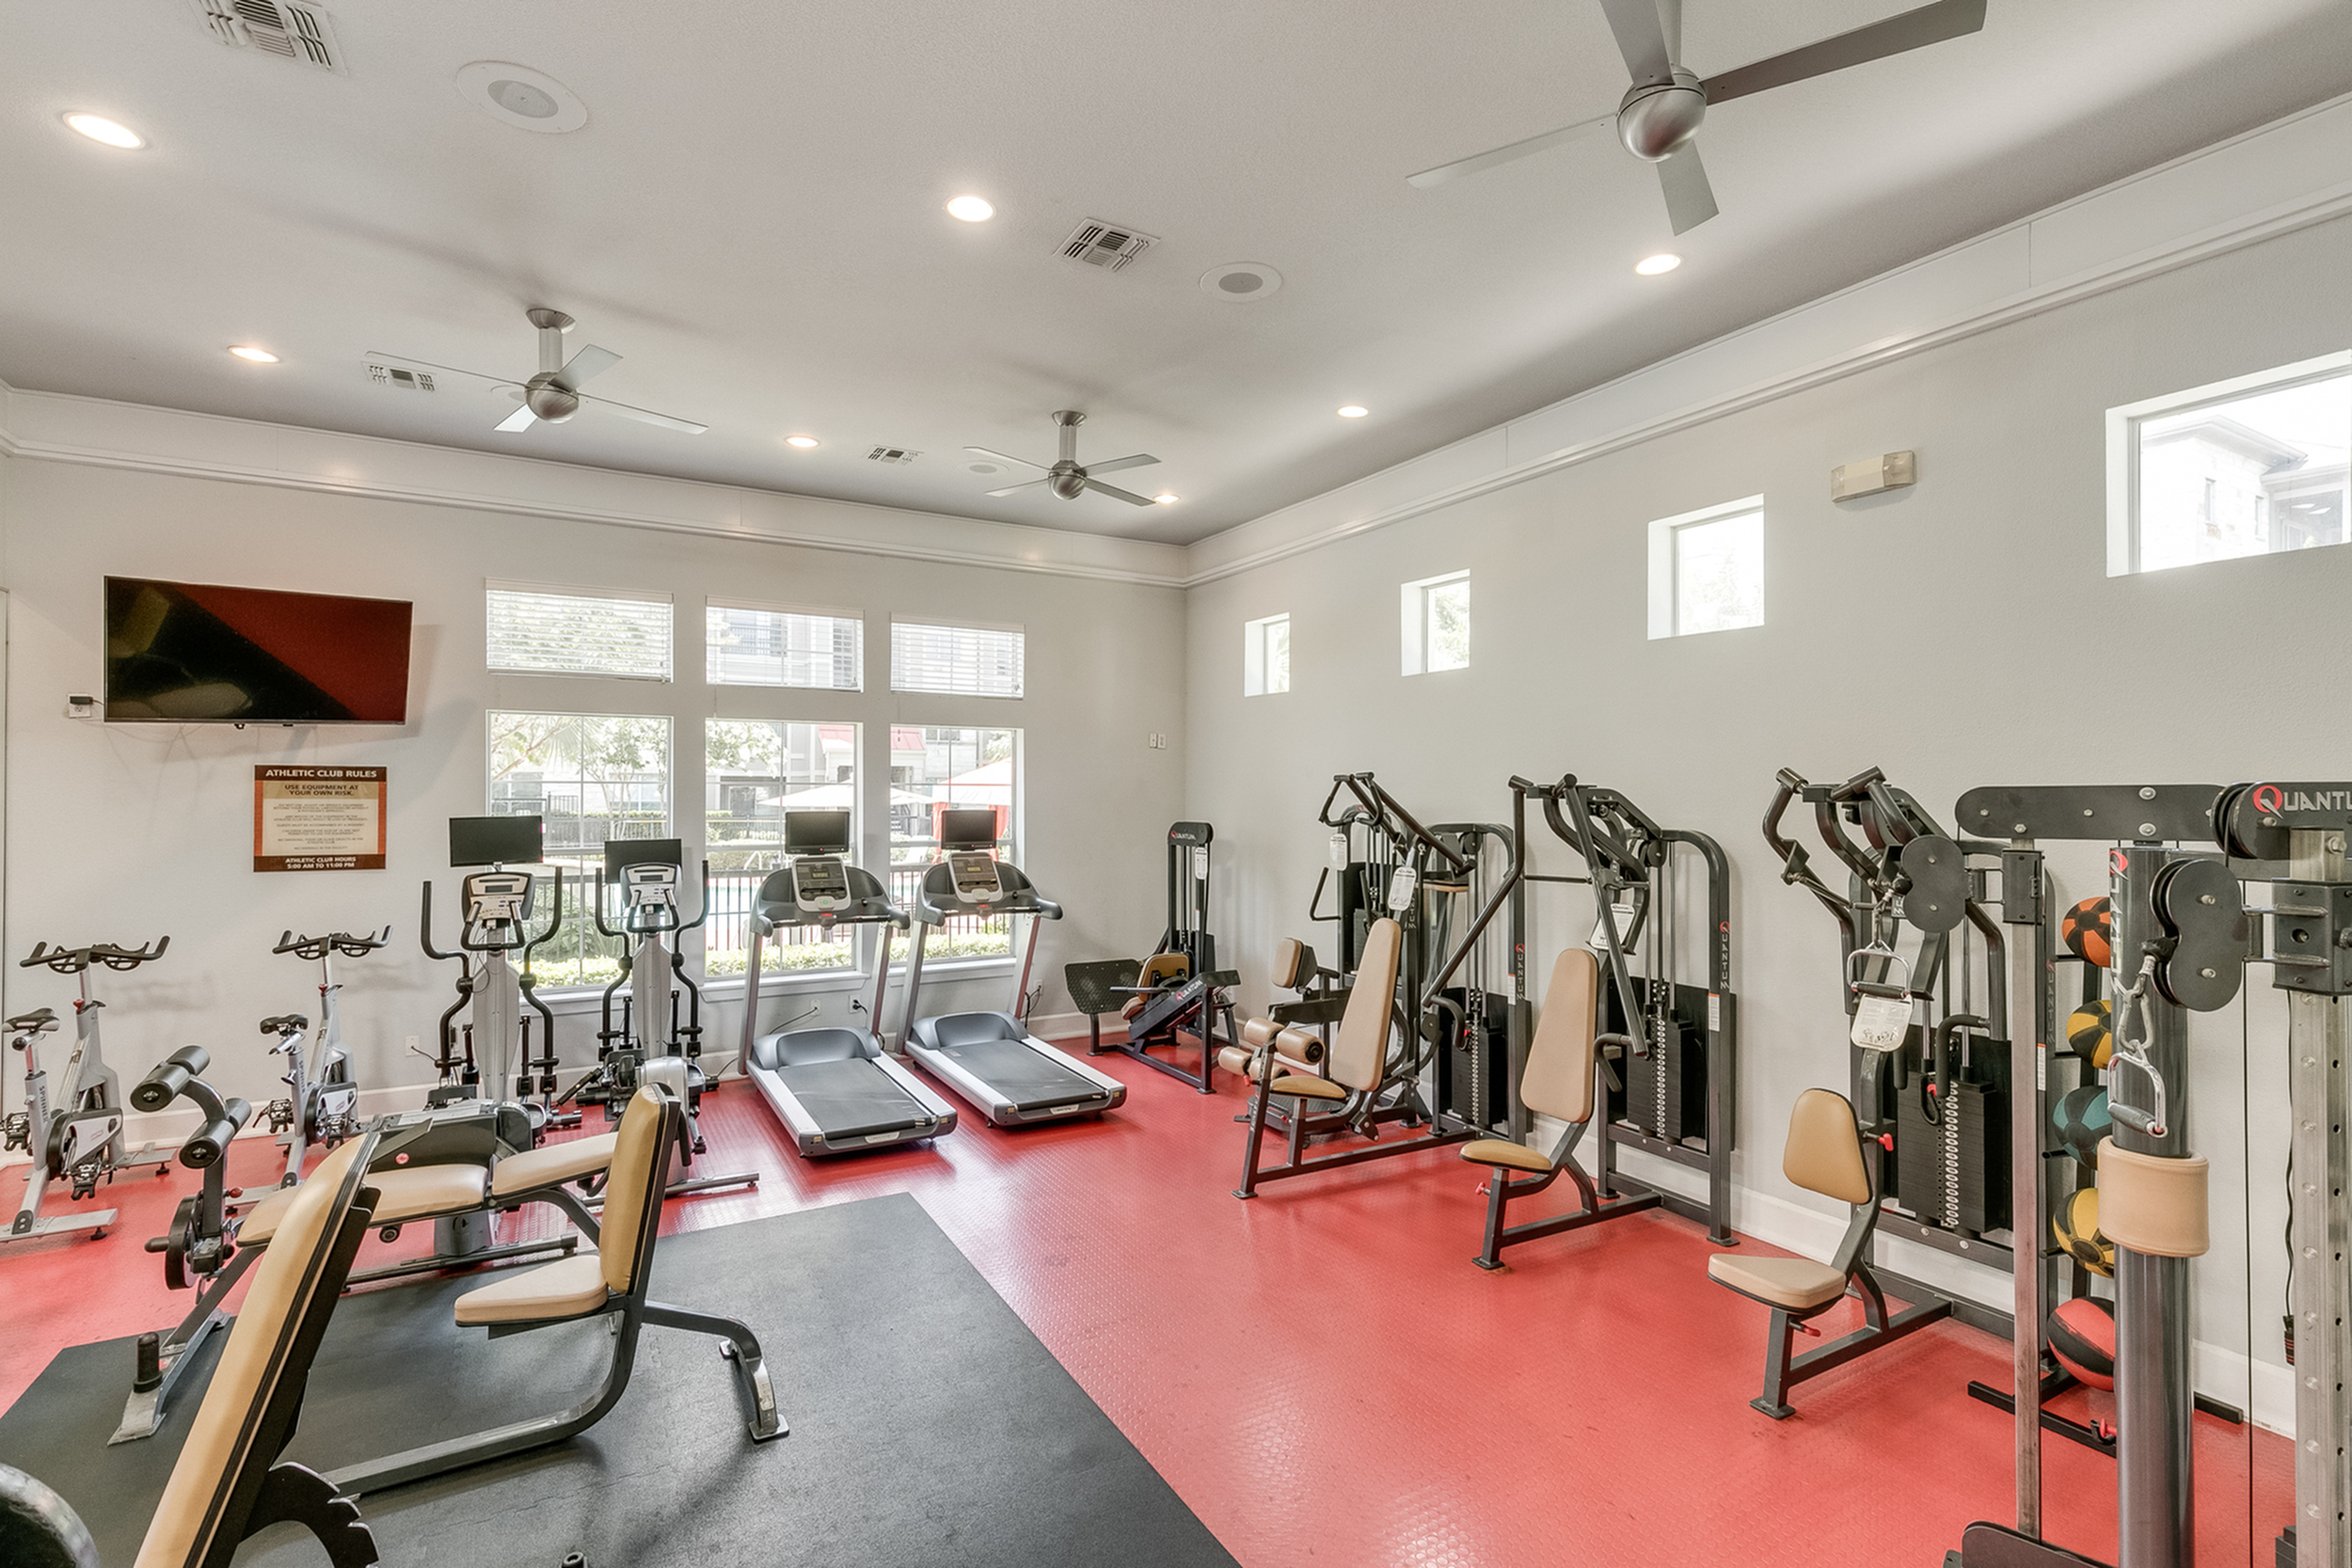 View of Fitness Center, Showing Weight Benches, Cardio Equipment, Medicine Balls, and Flat Screen TV at Retreat at Stafford Apartments